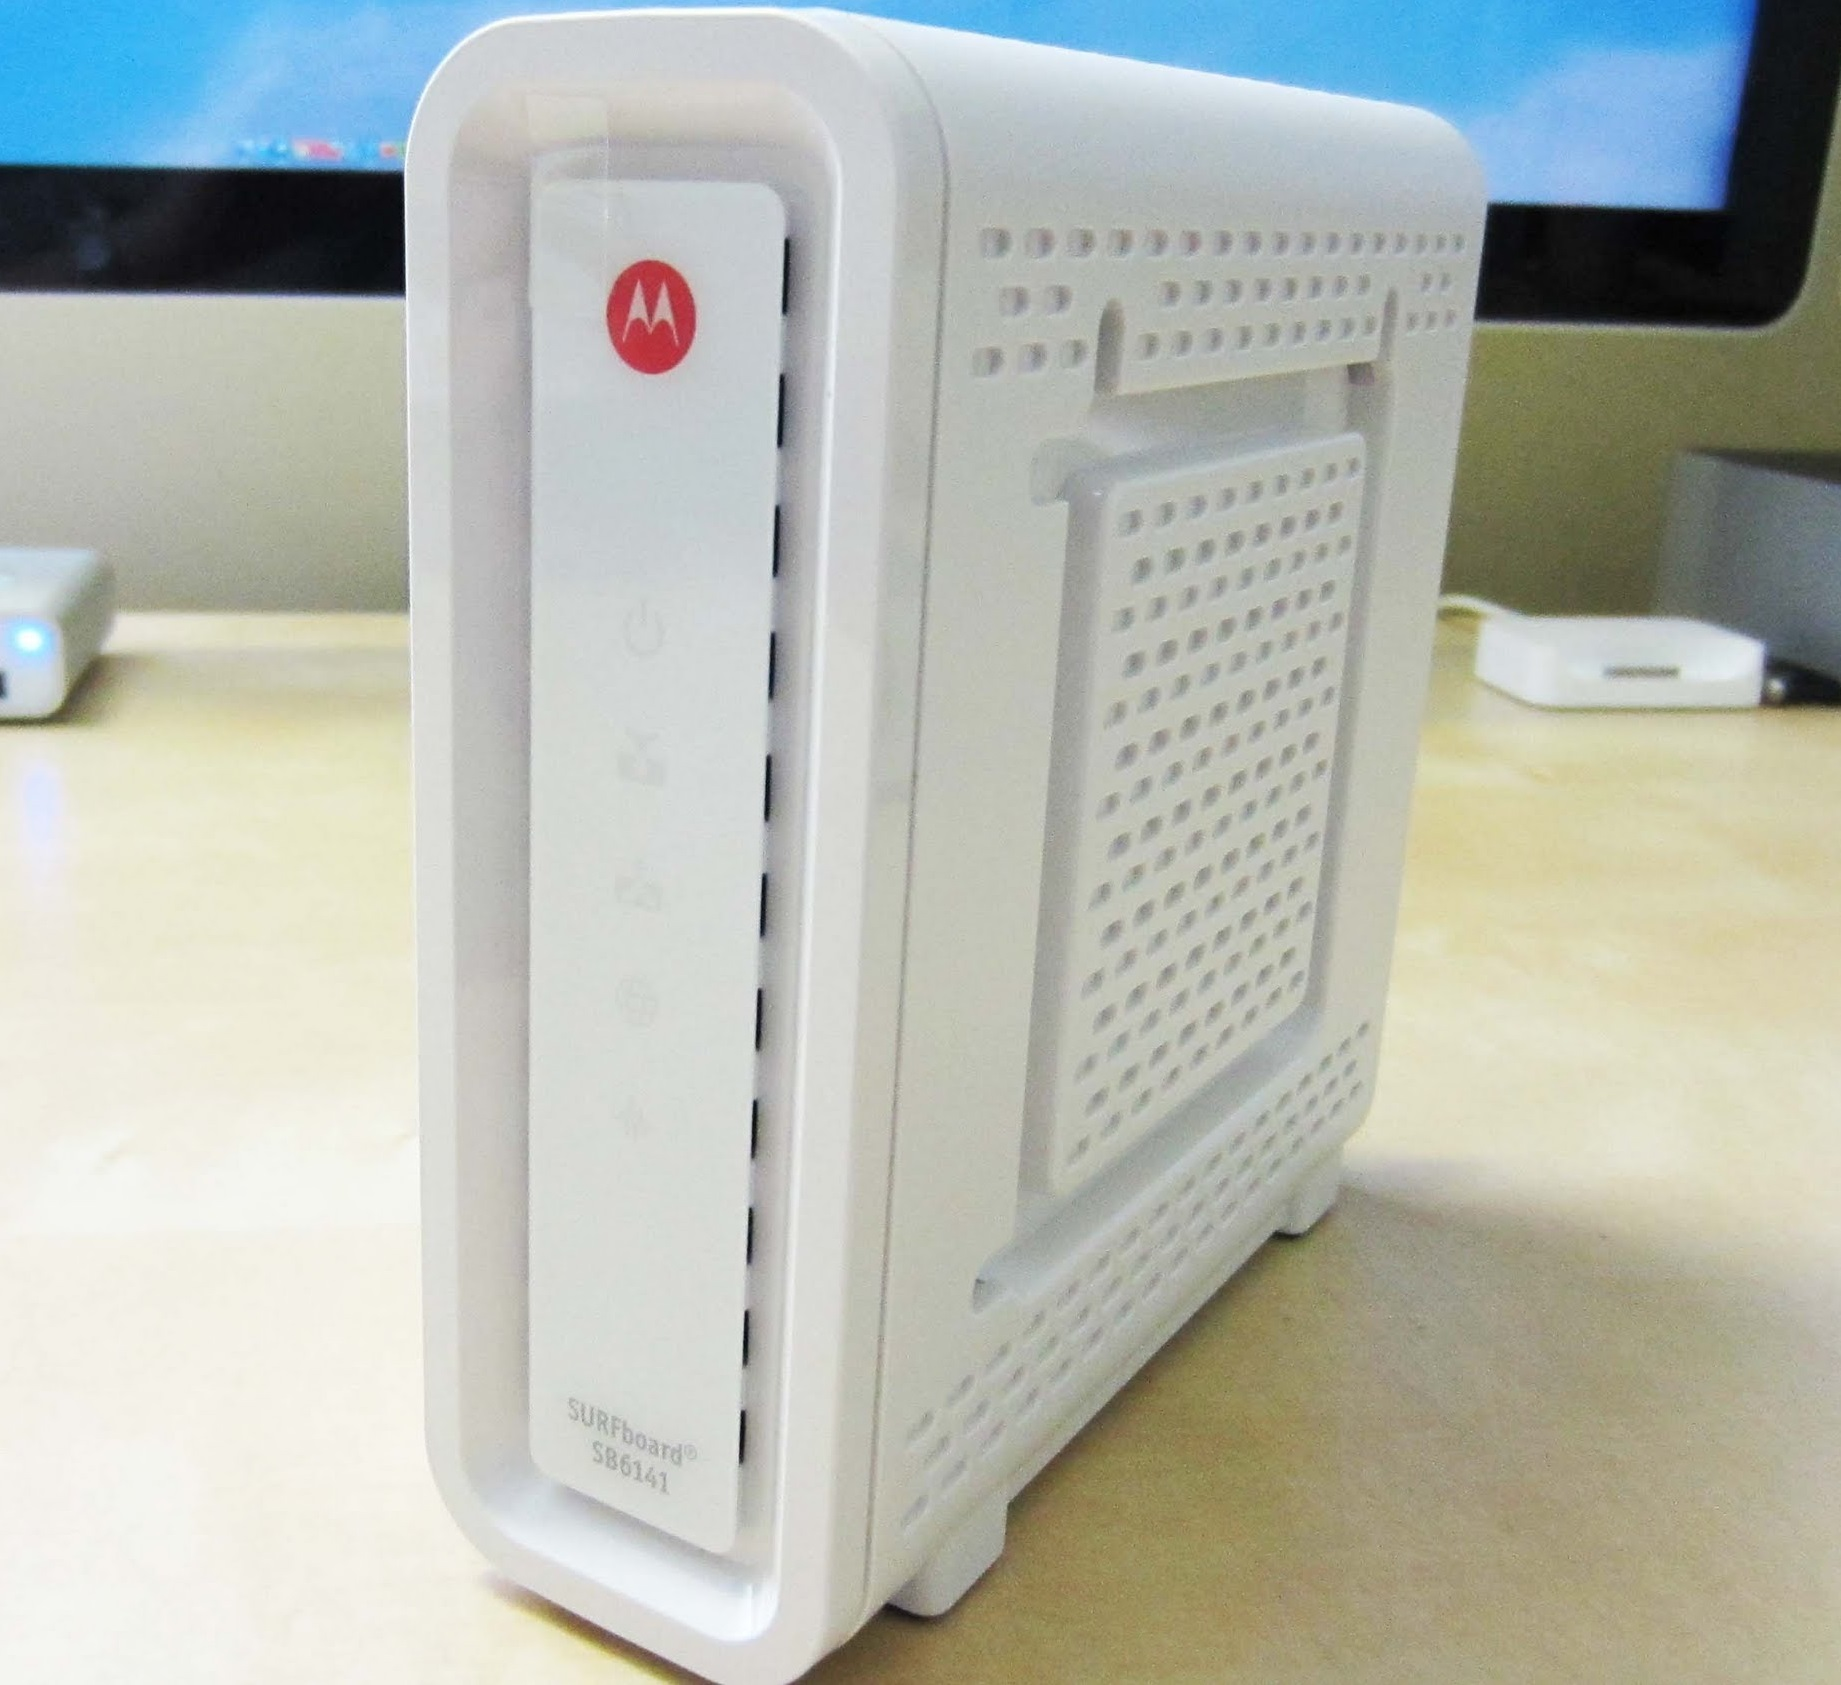 Best Wifi Modem, Router, Gateway for Office or PC Gaming